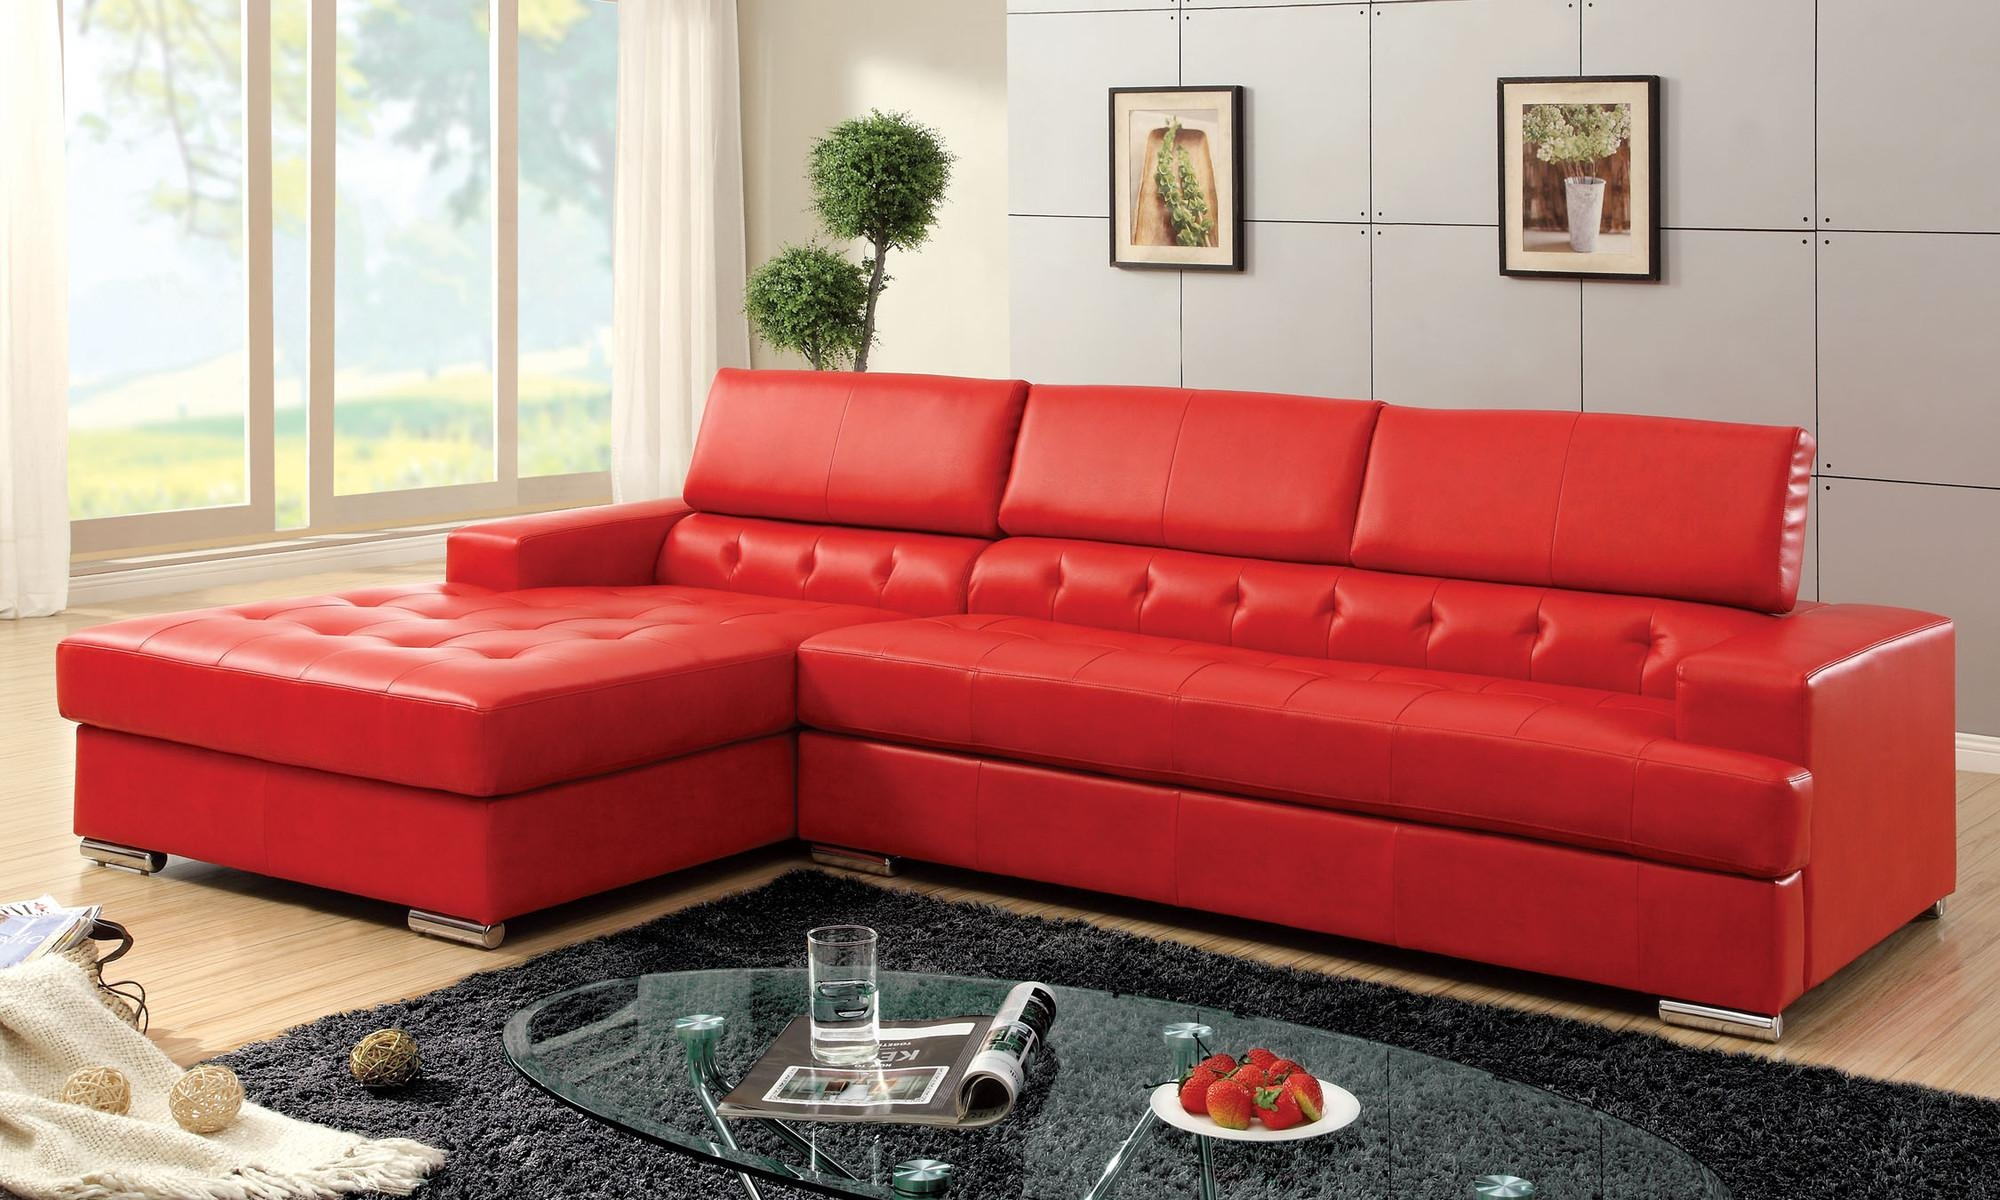 Furniture : Living Room Sectionals Sectional Sleeper Sofa Grey Pertaining To Red Sectional Sleeper Sofas (View 7 of 22)